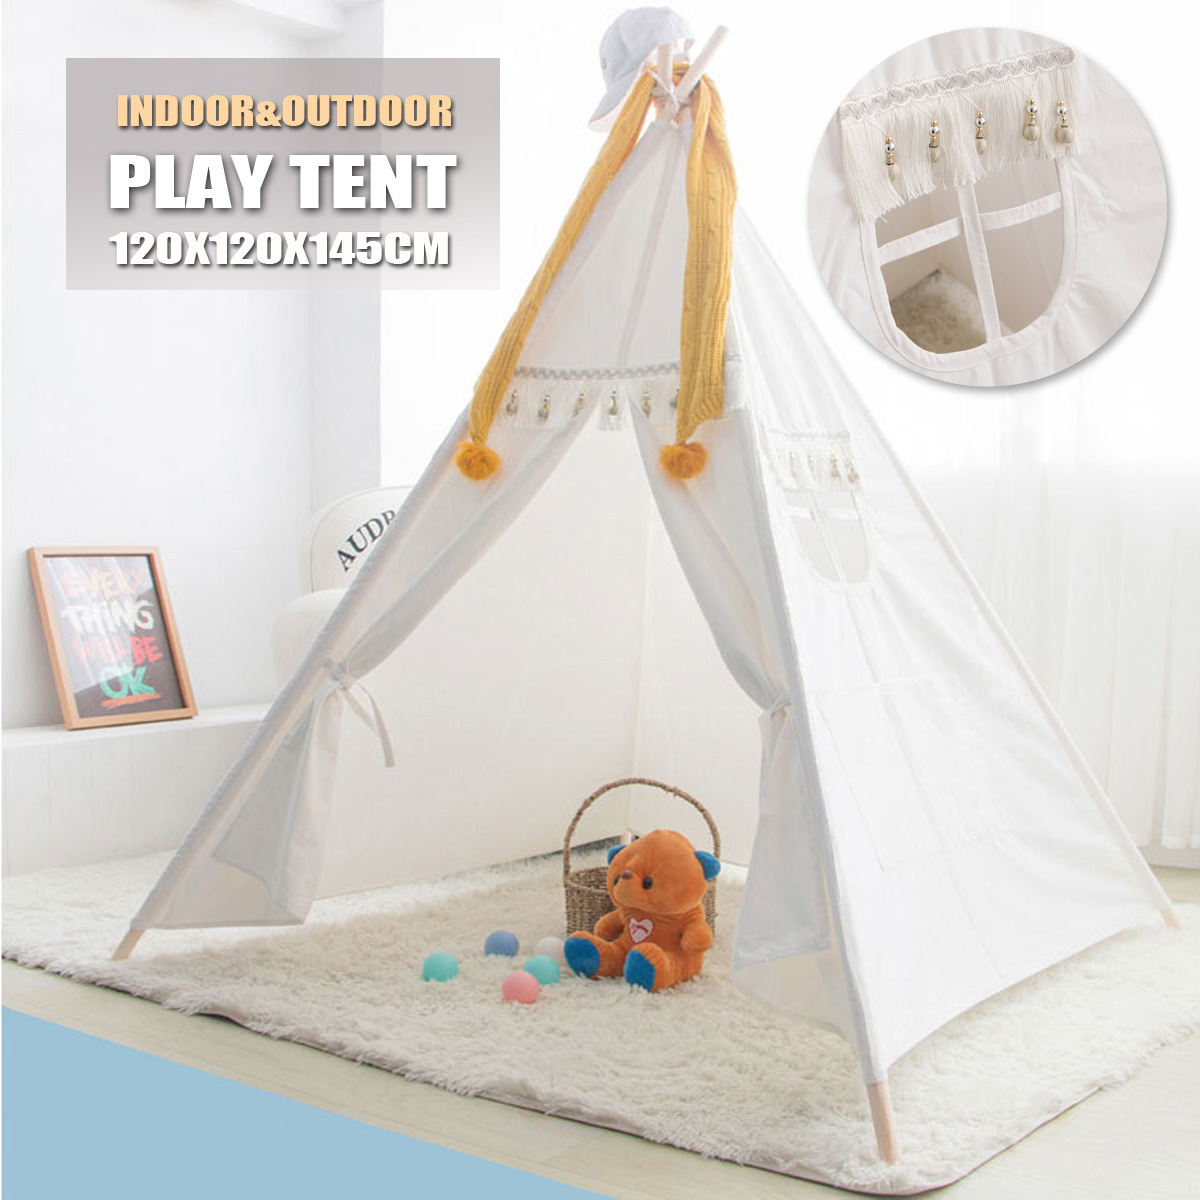 dog /cat Pet Tent Game House Cotton Indoor Toy House 4 Poles Kids Tent Babys Private Domain Cotton material 120x120x145cm